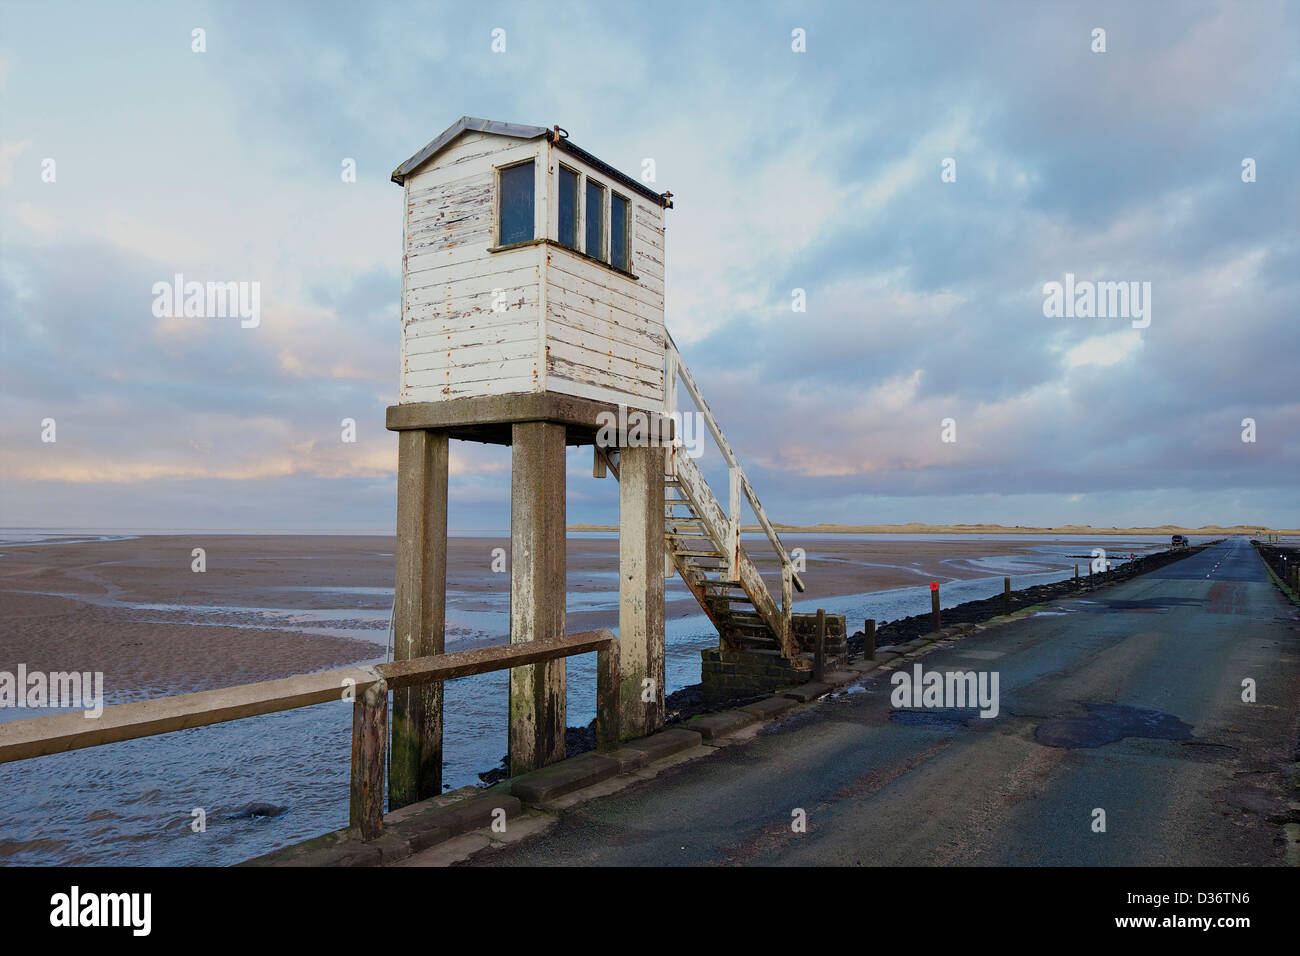 Safety shelter on causeway, Lindisfarne, Northumberland, Northeast England, UK, GB - Stock Image